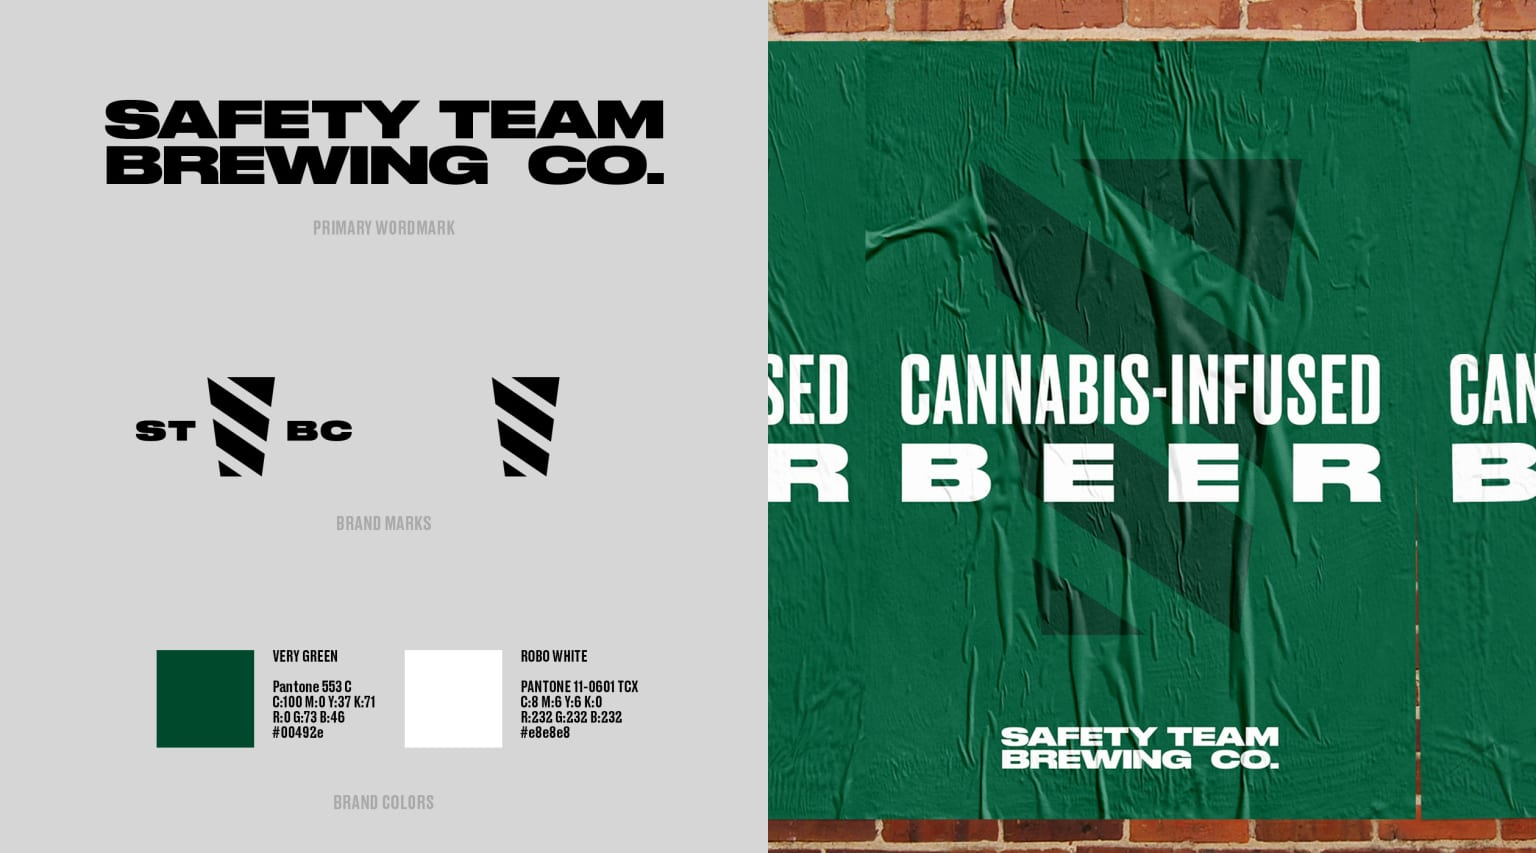 Safety Team Brewing Co. Identity and Branding